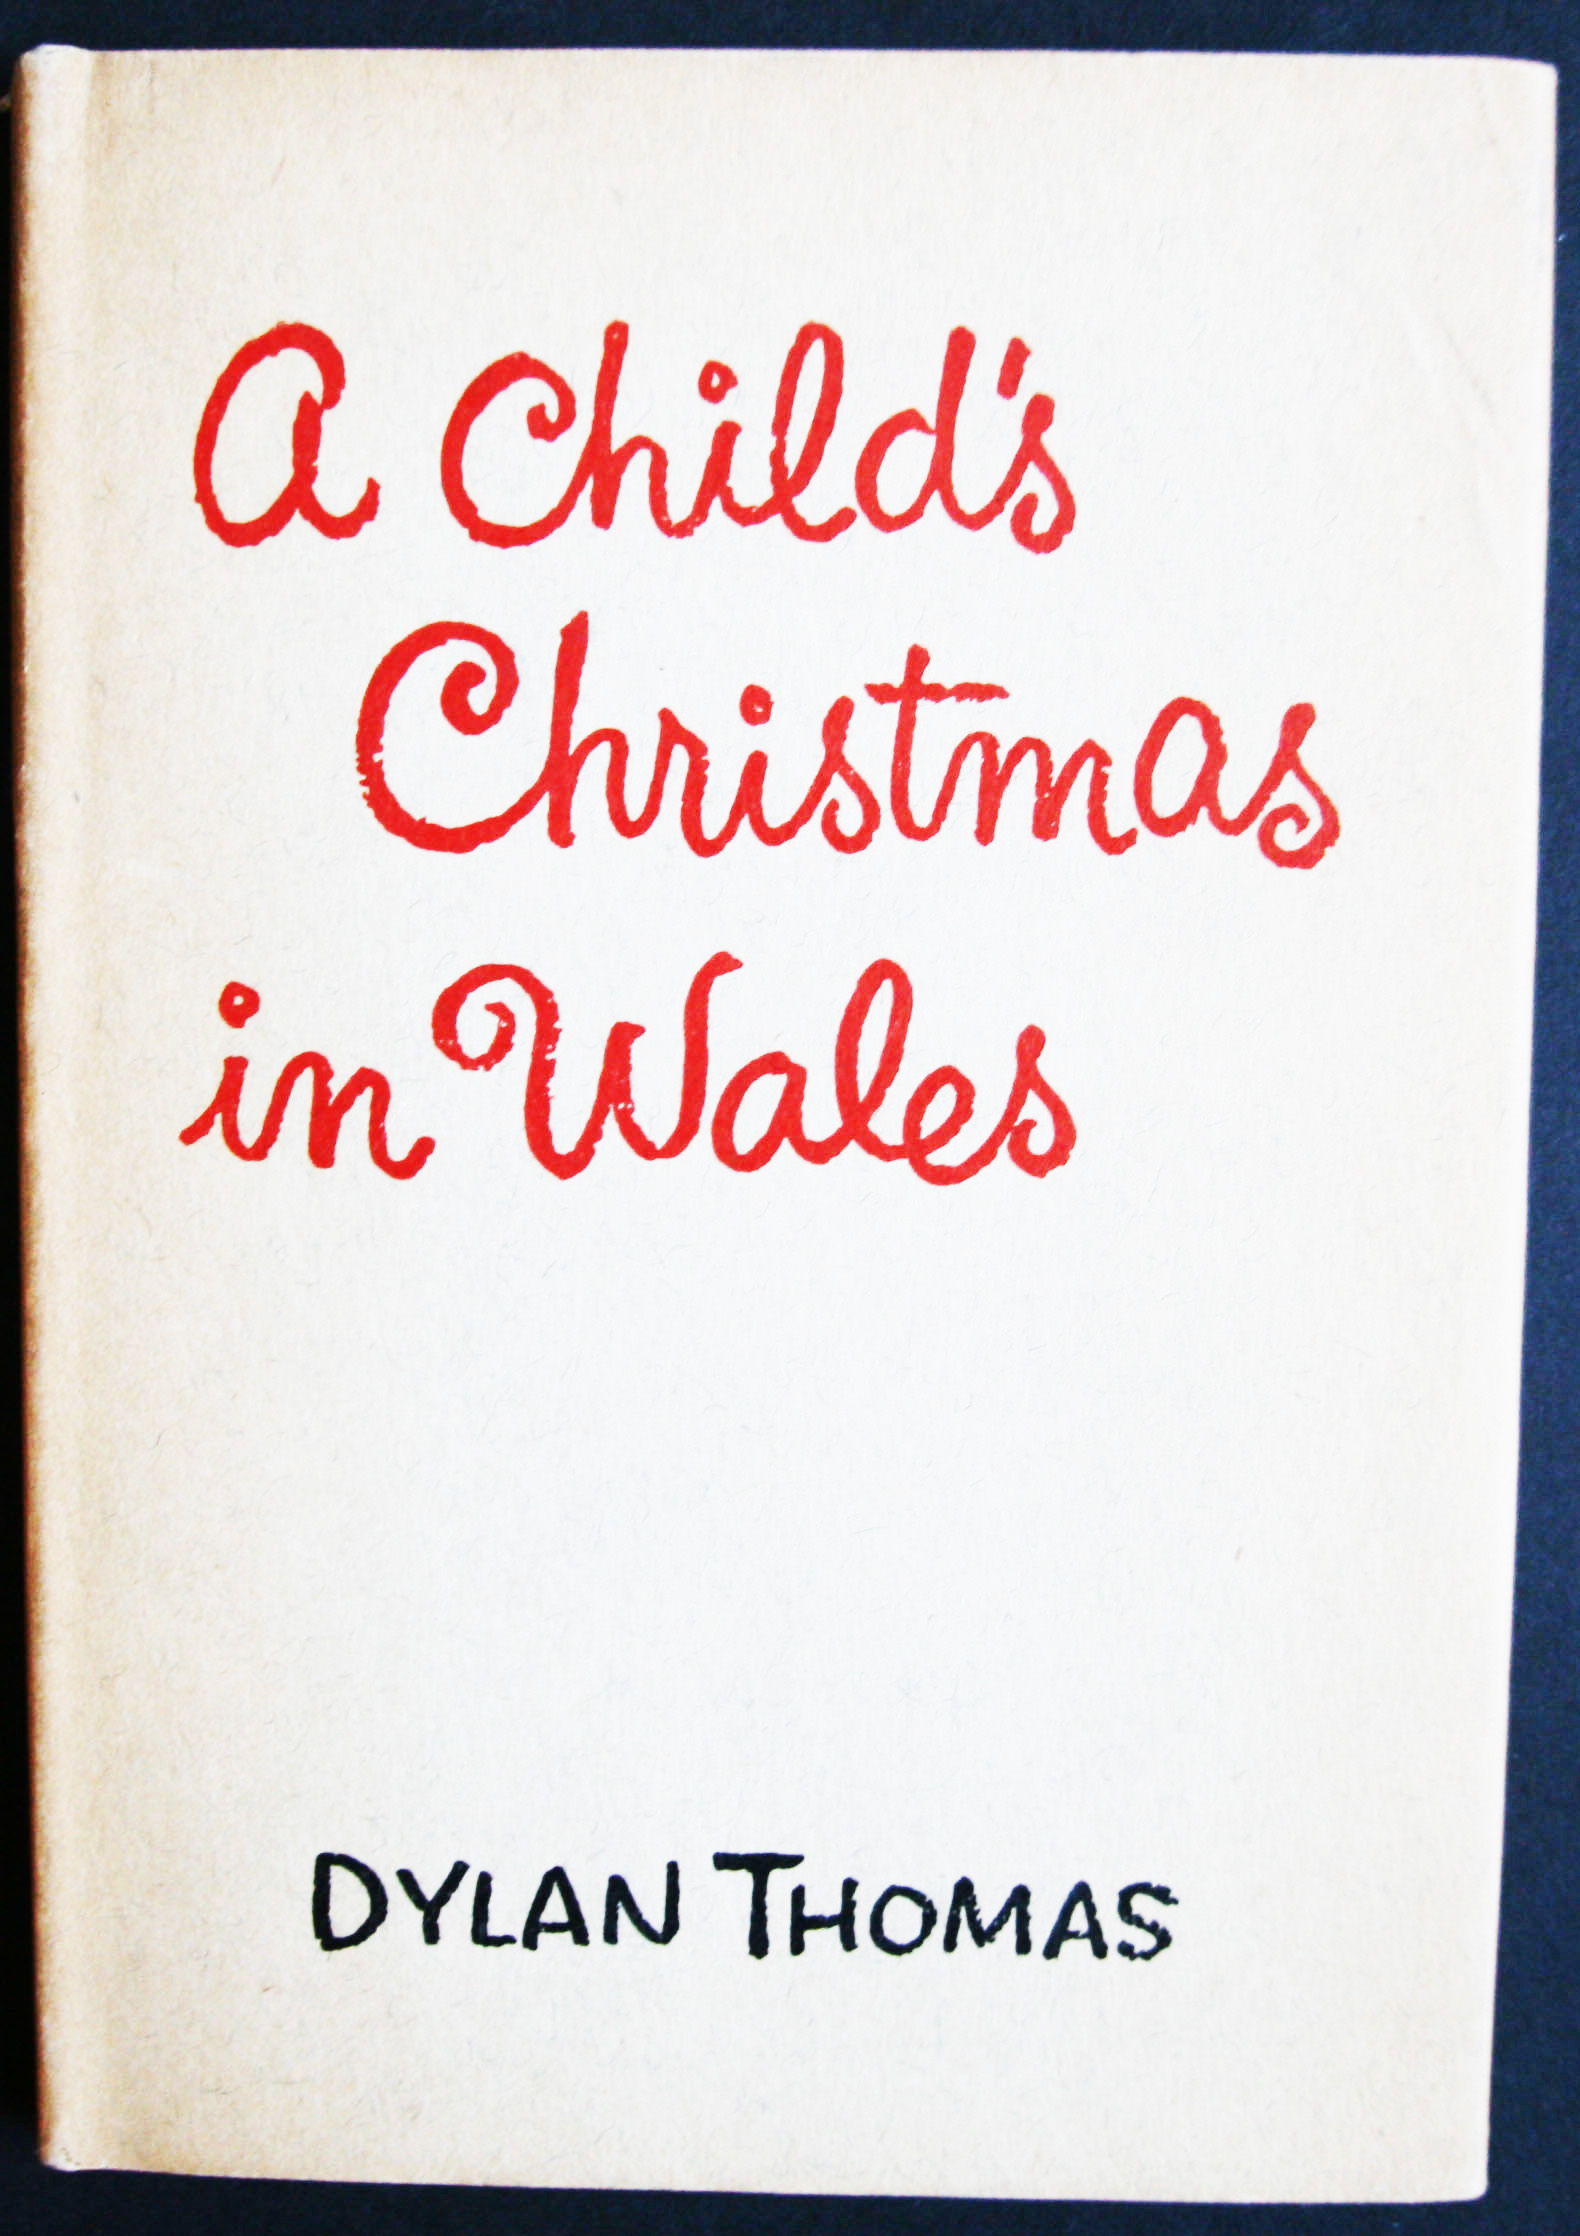 Dylan Thomas A Childs Christmas In Wales first edition